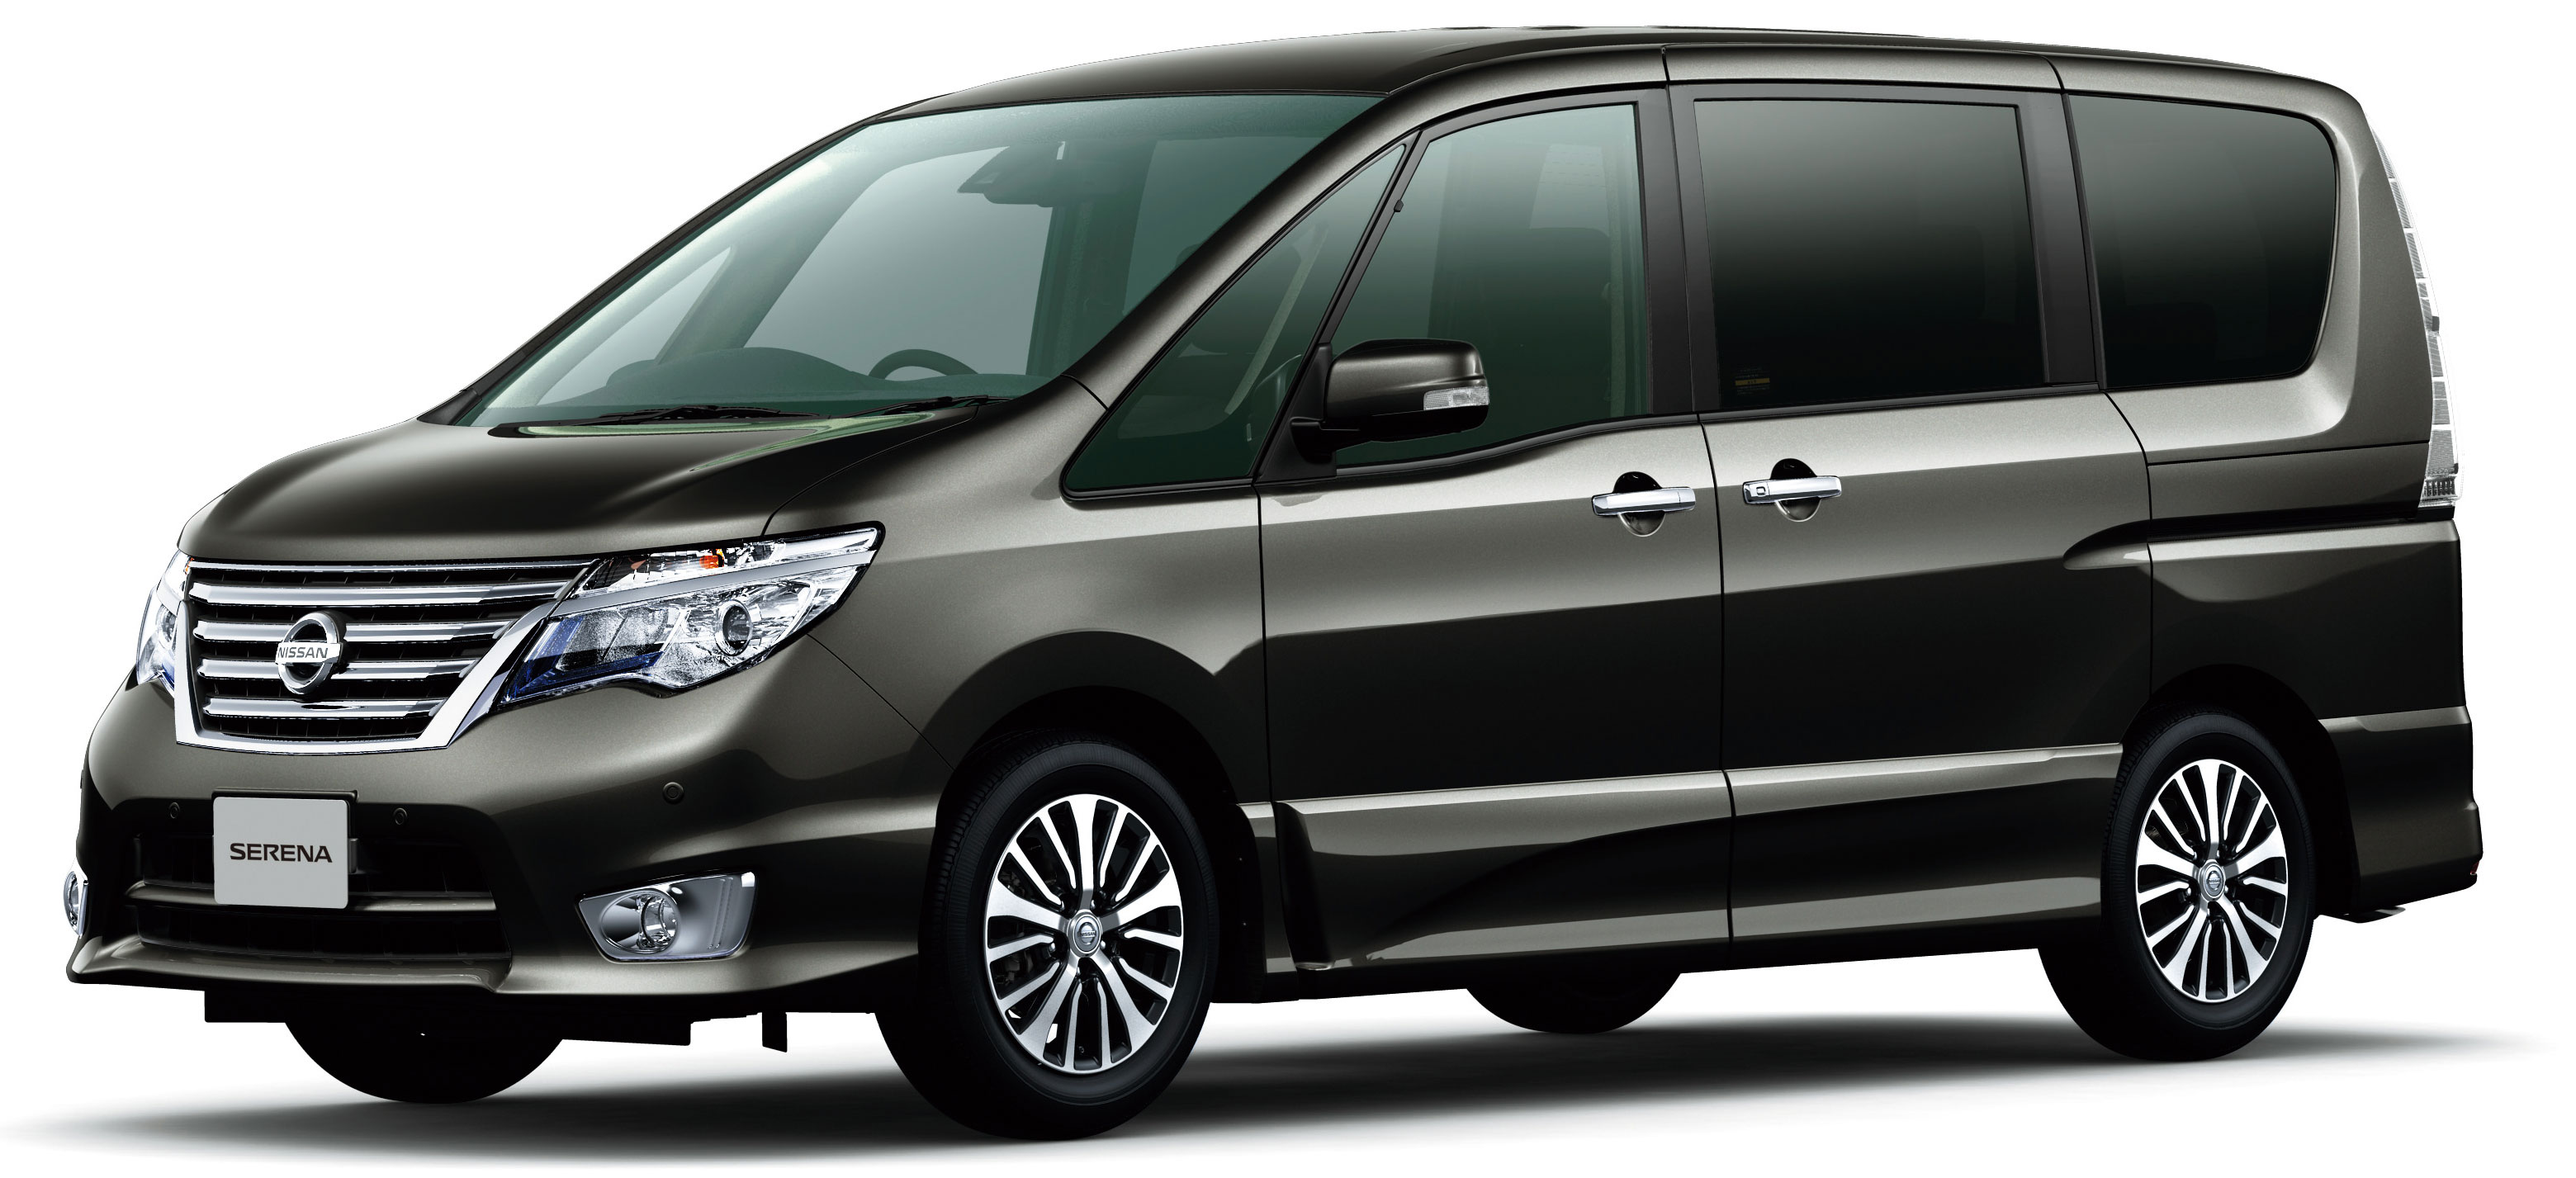 nissan serena s hybrid facelift unveiled at tokyo 2013. Black Bedroom Furniture Sets. Home Design Ideas